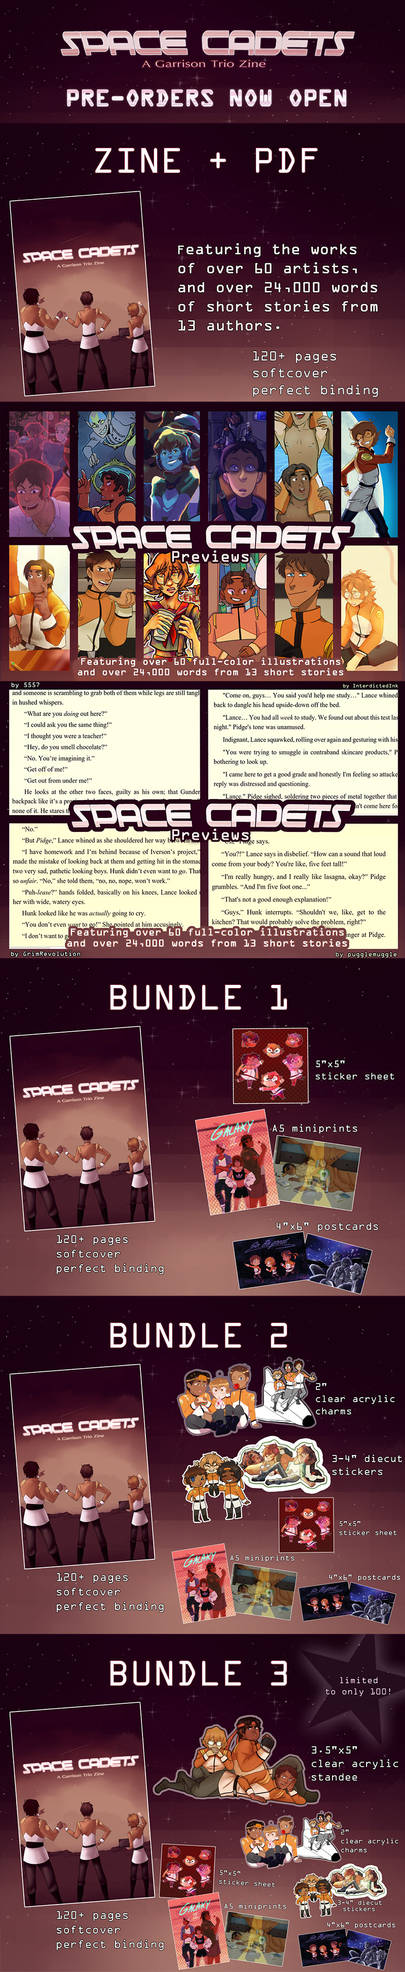 Space Cadets: A Voltron Charity Zine by RobynRose